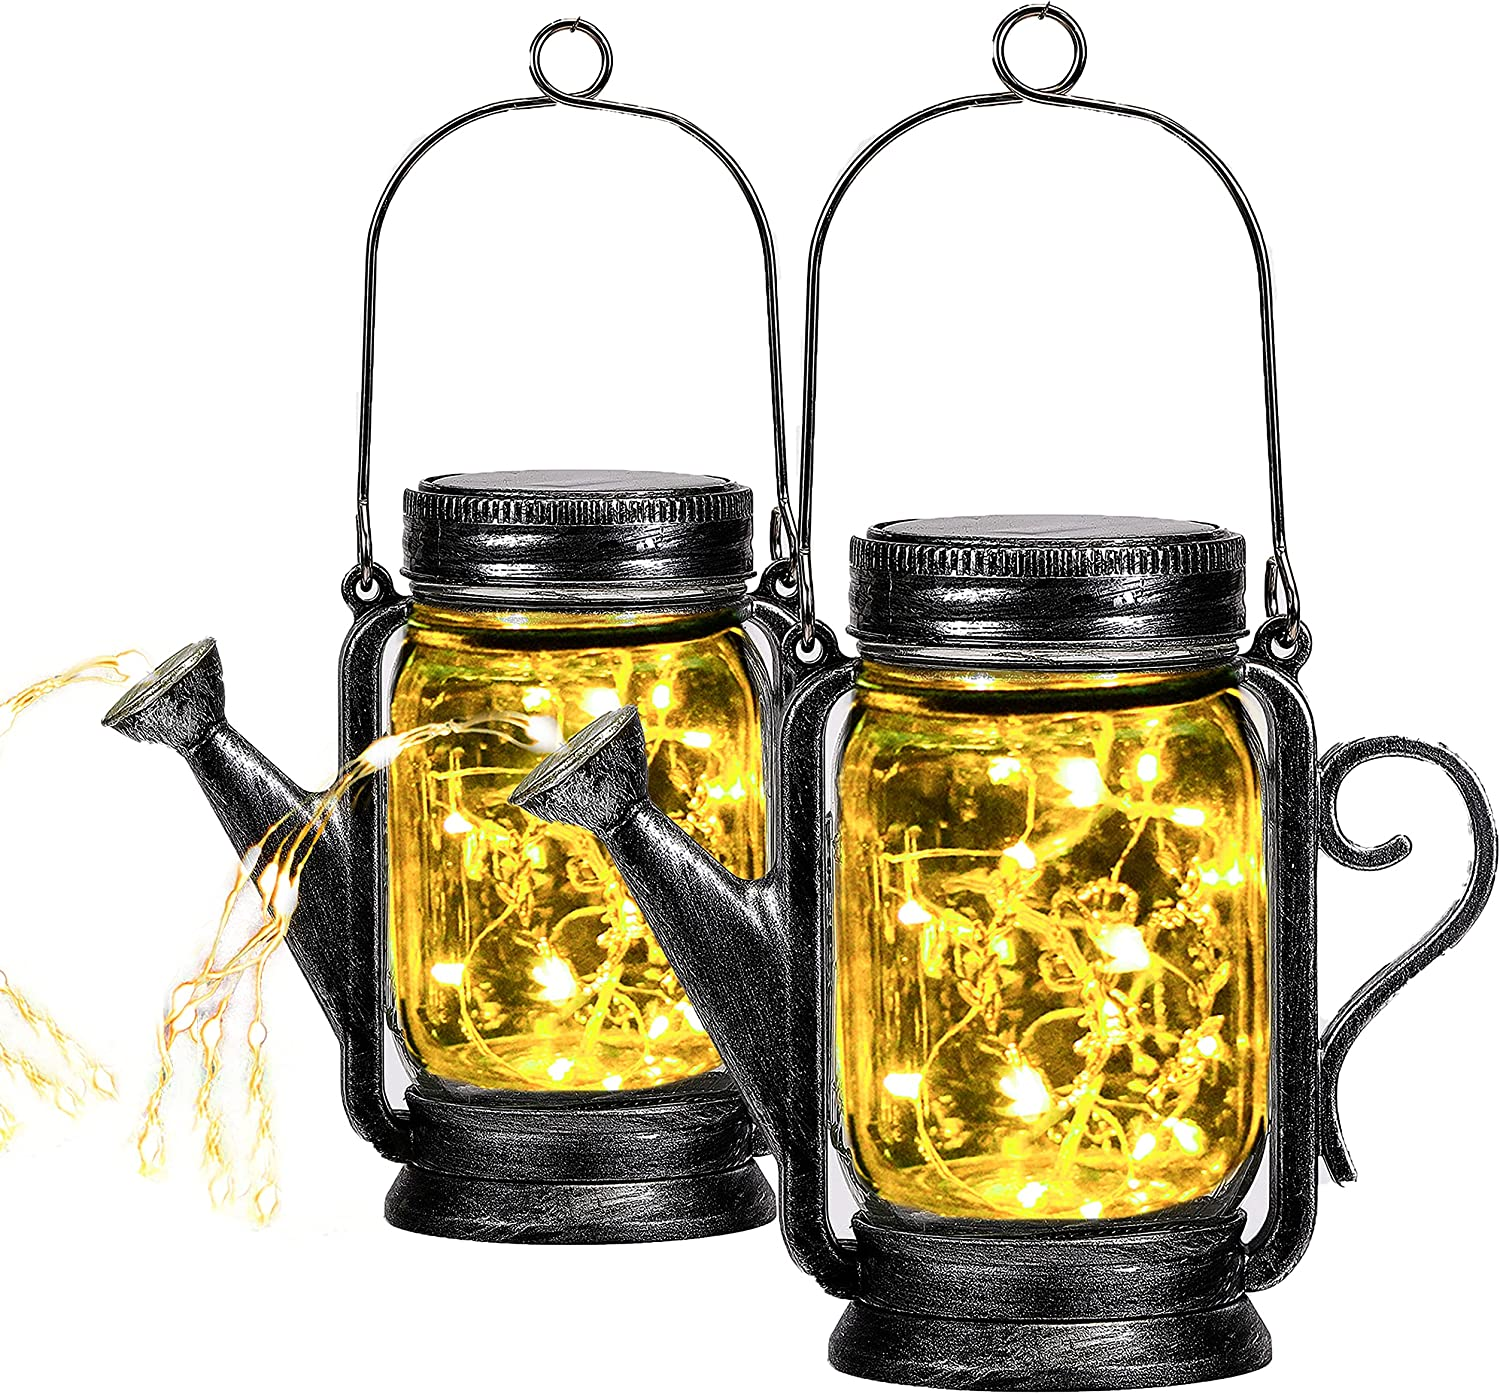 2 Pack Yeuago Outdoor Hanging Solar Lanterns Mason Jar Solar Lights, Solar Powered Warm Lights with 45 Led String Lights for Patio Yard Walkway Garden Decorations - Waterproof Jars and Lids Included